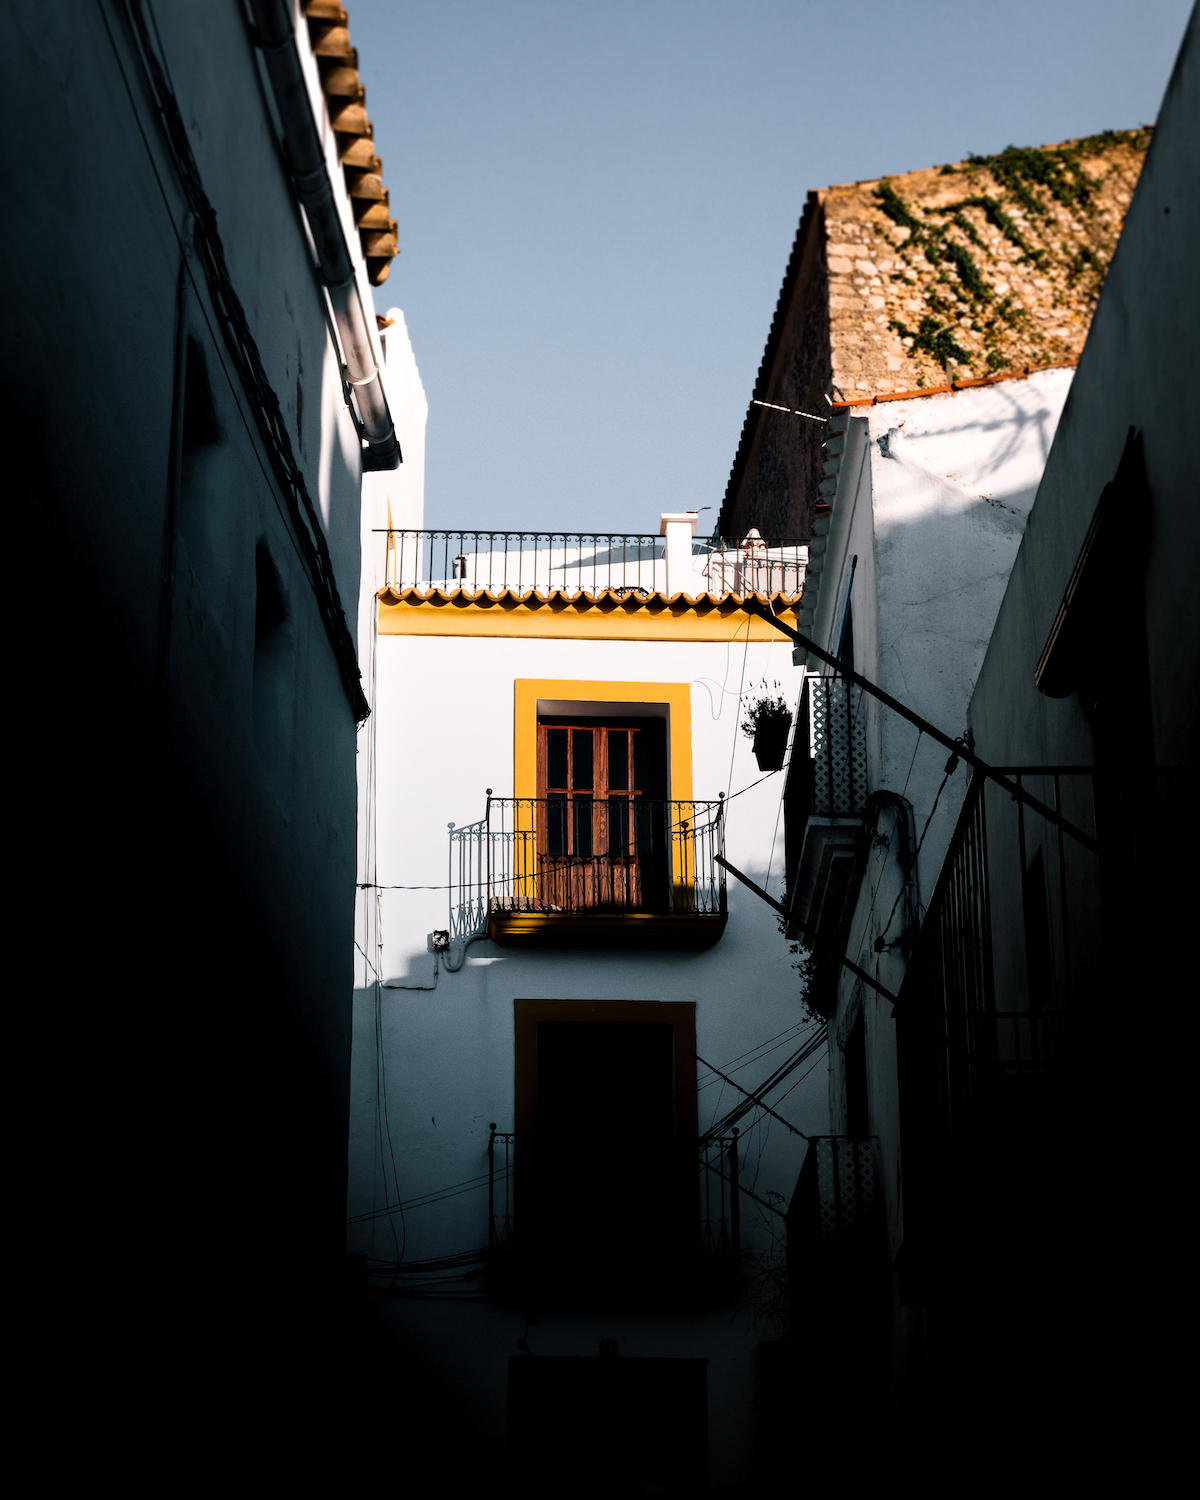 Ibiza Old Town - by Ben Holbrook